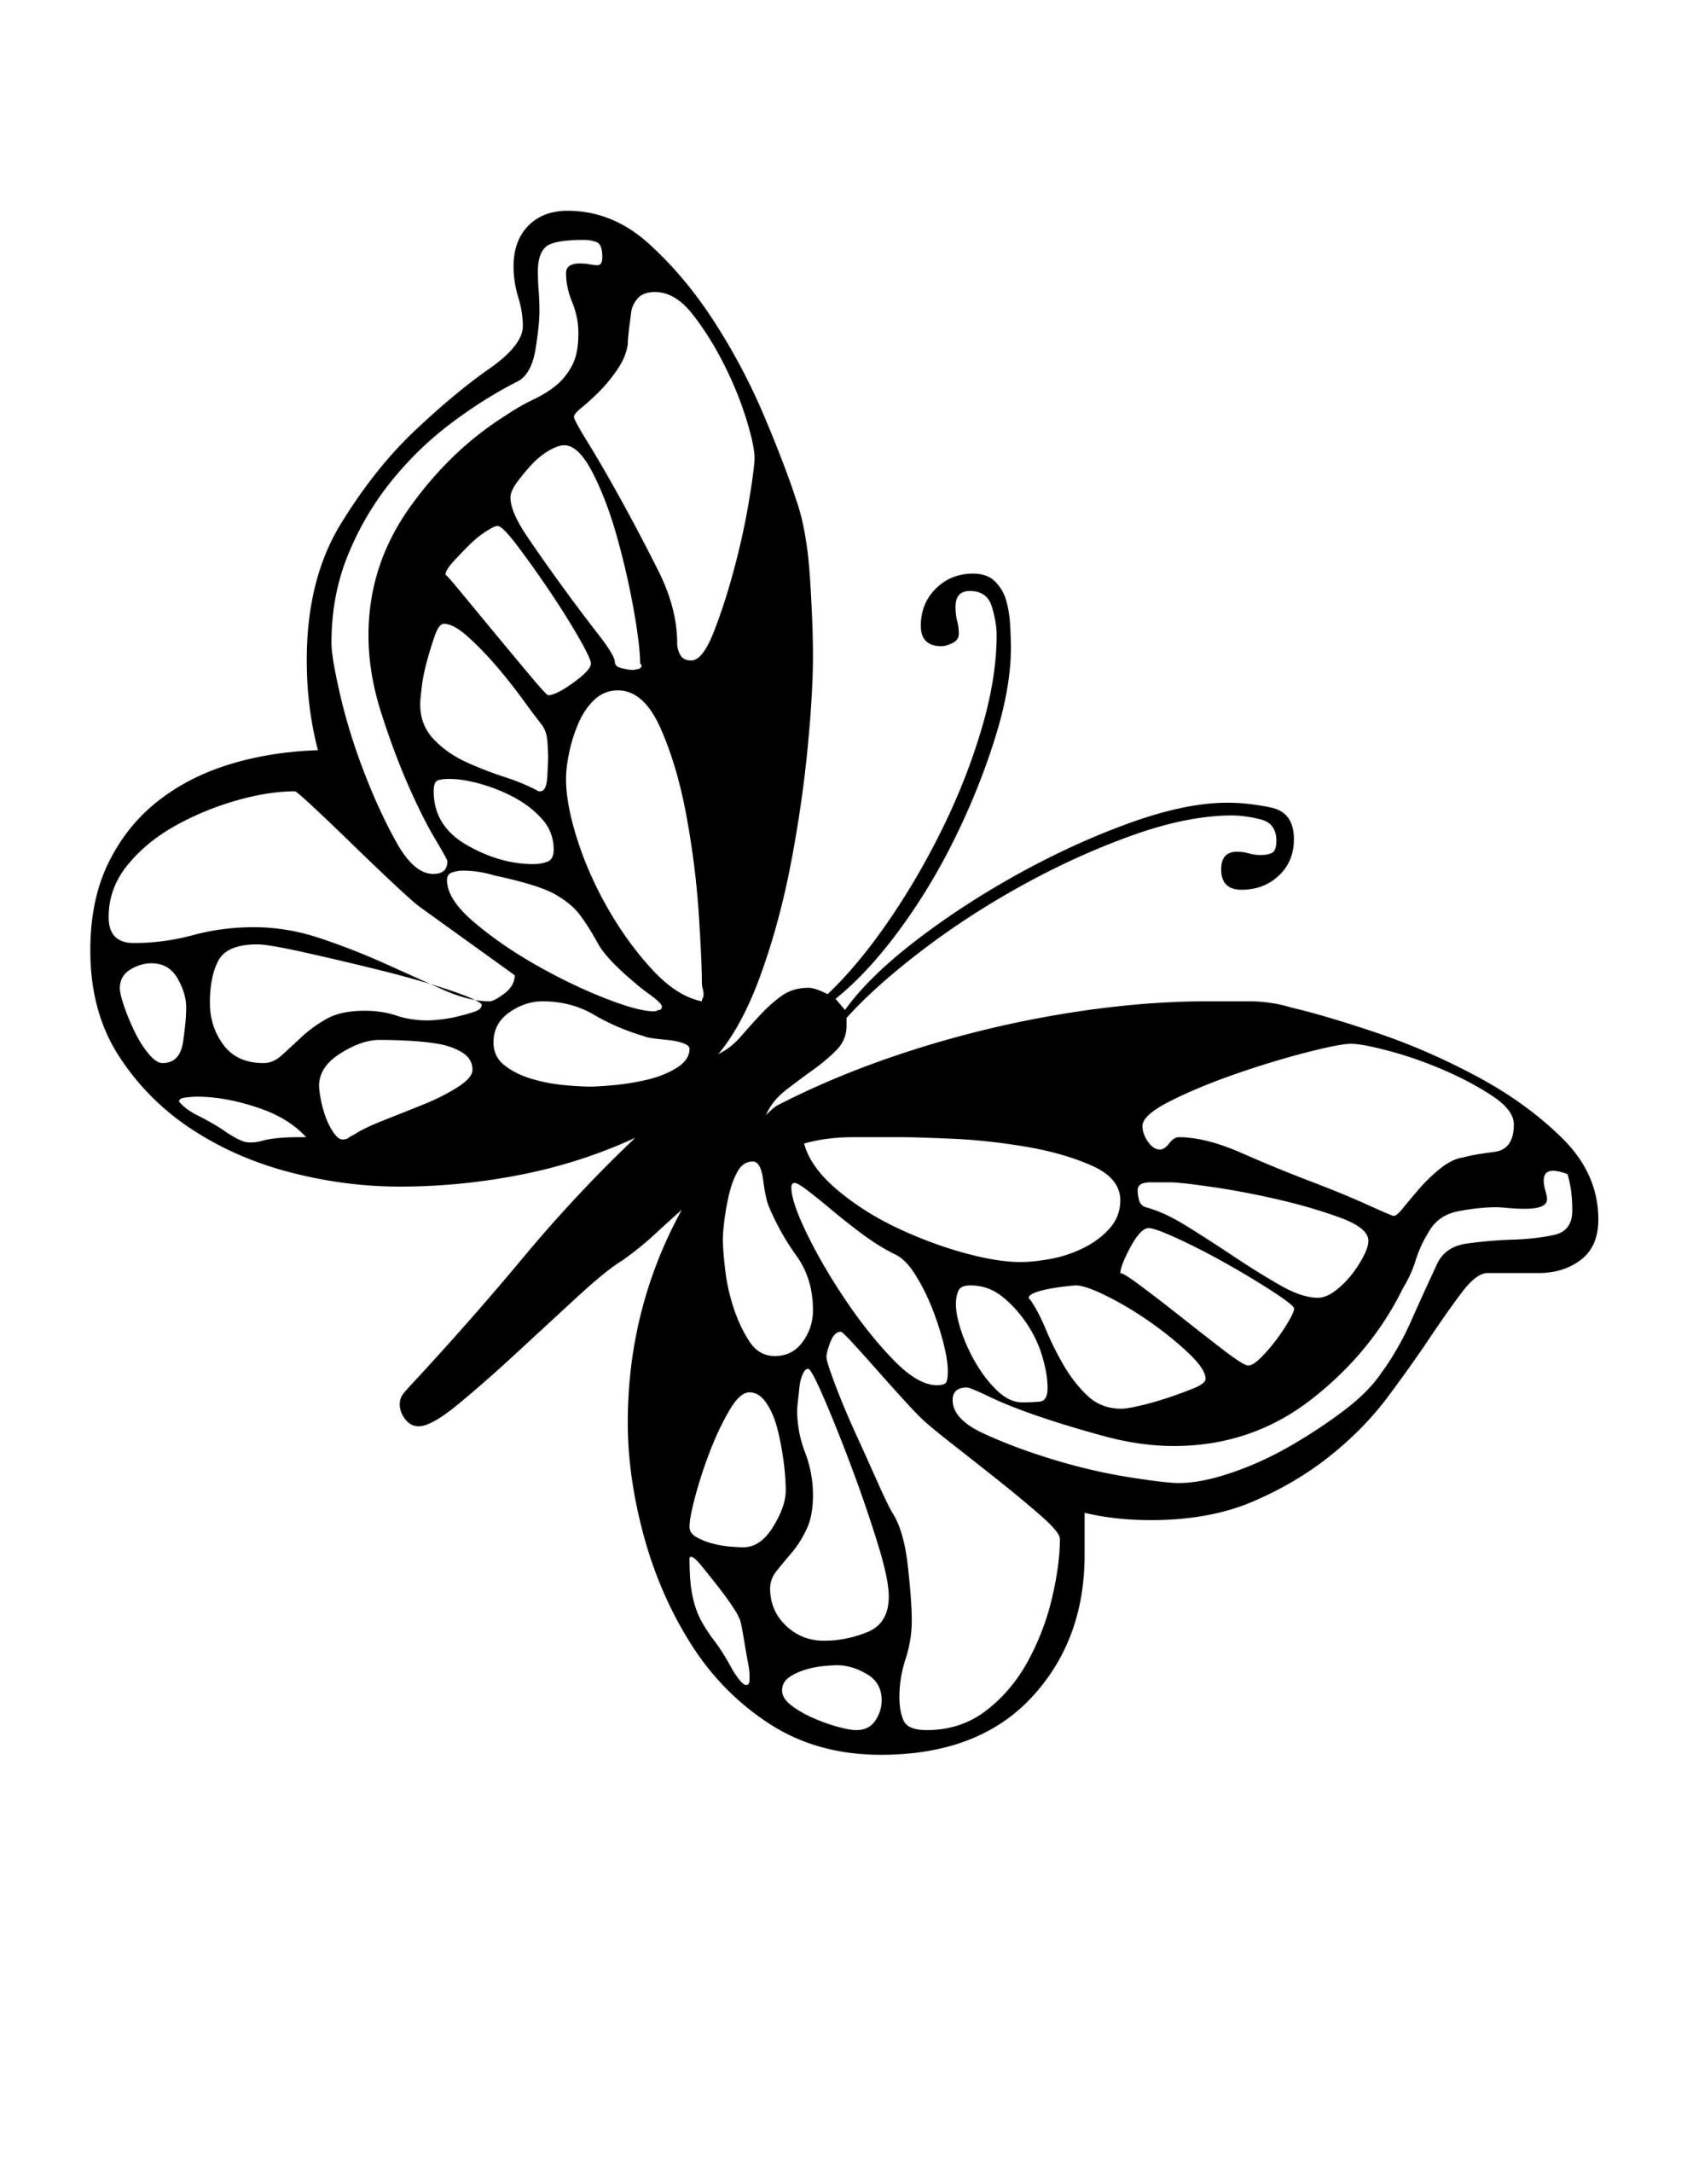 Butterfly Wing Coloring Page Youngandtae Com Butterfly Coloring Page Butterfly Drawing Butterfly Stencil